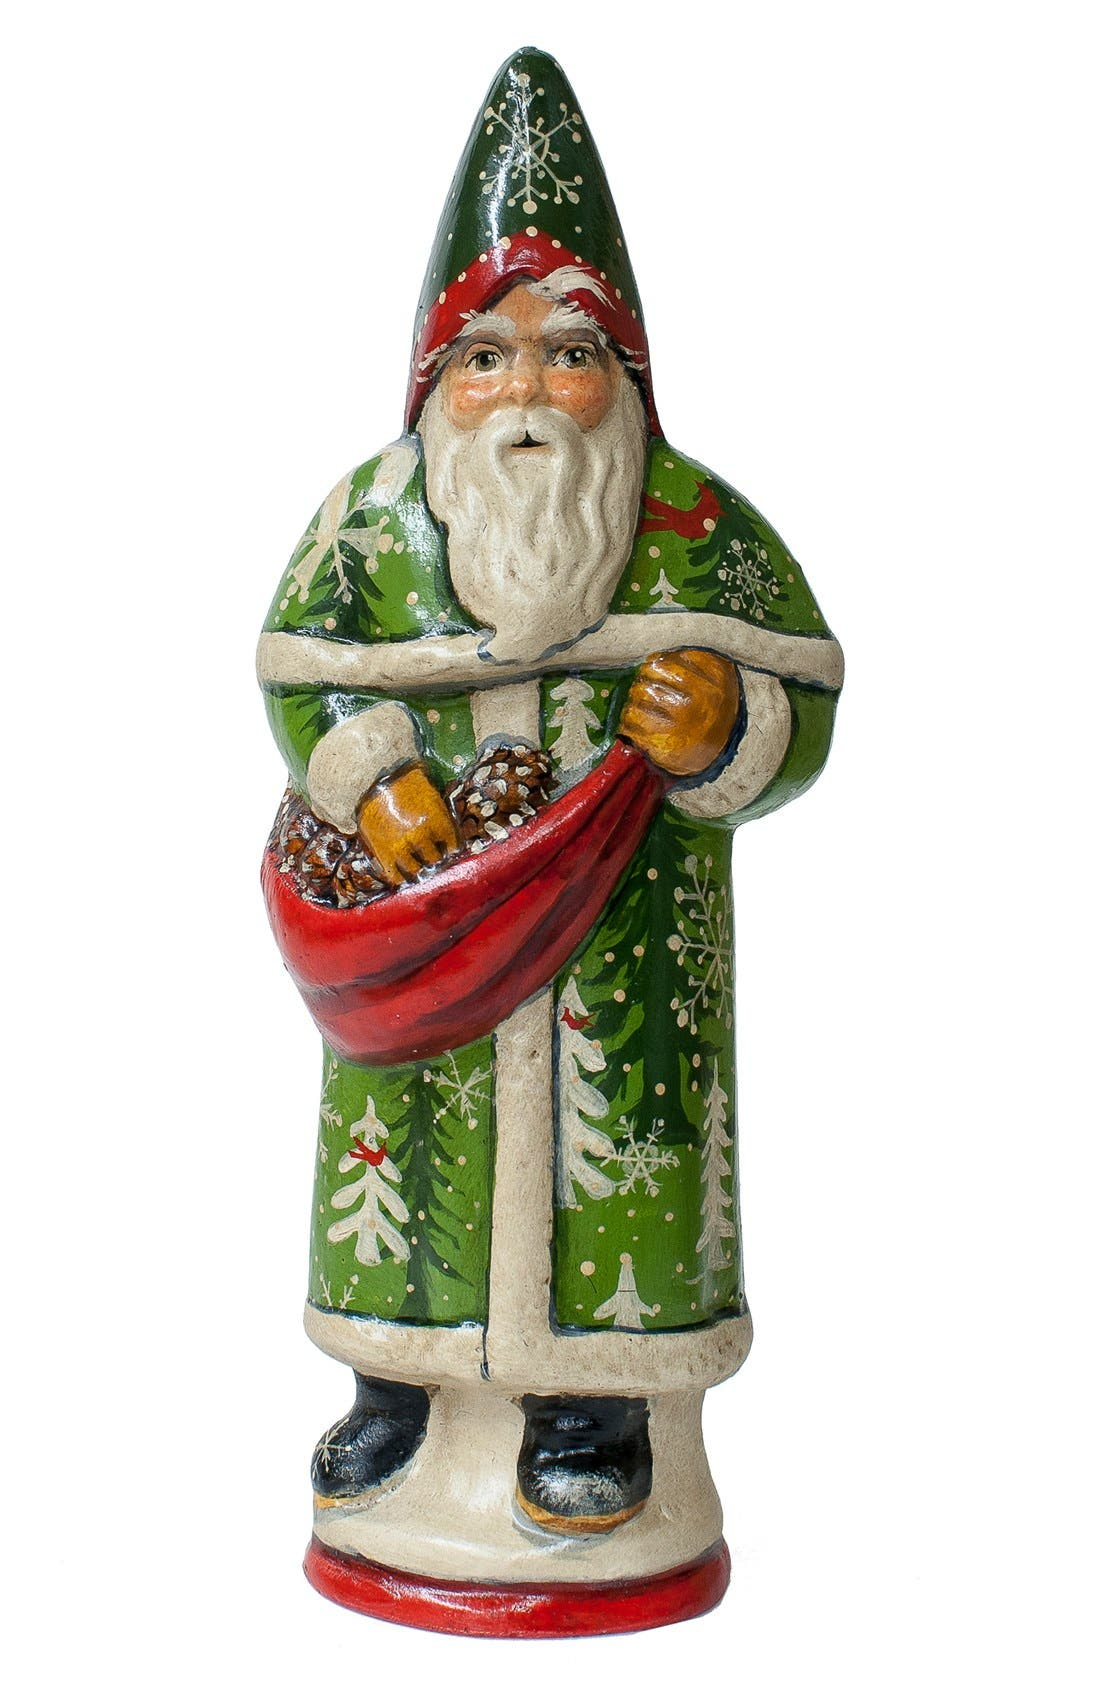 Alternate Image 1 Selected - Vaillancourt 'Forest Santa with Pinecones' Figurine